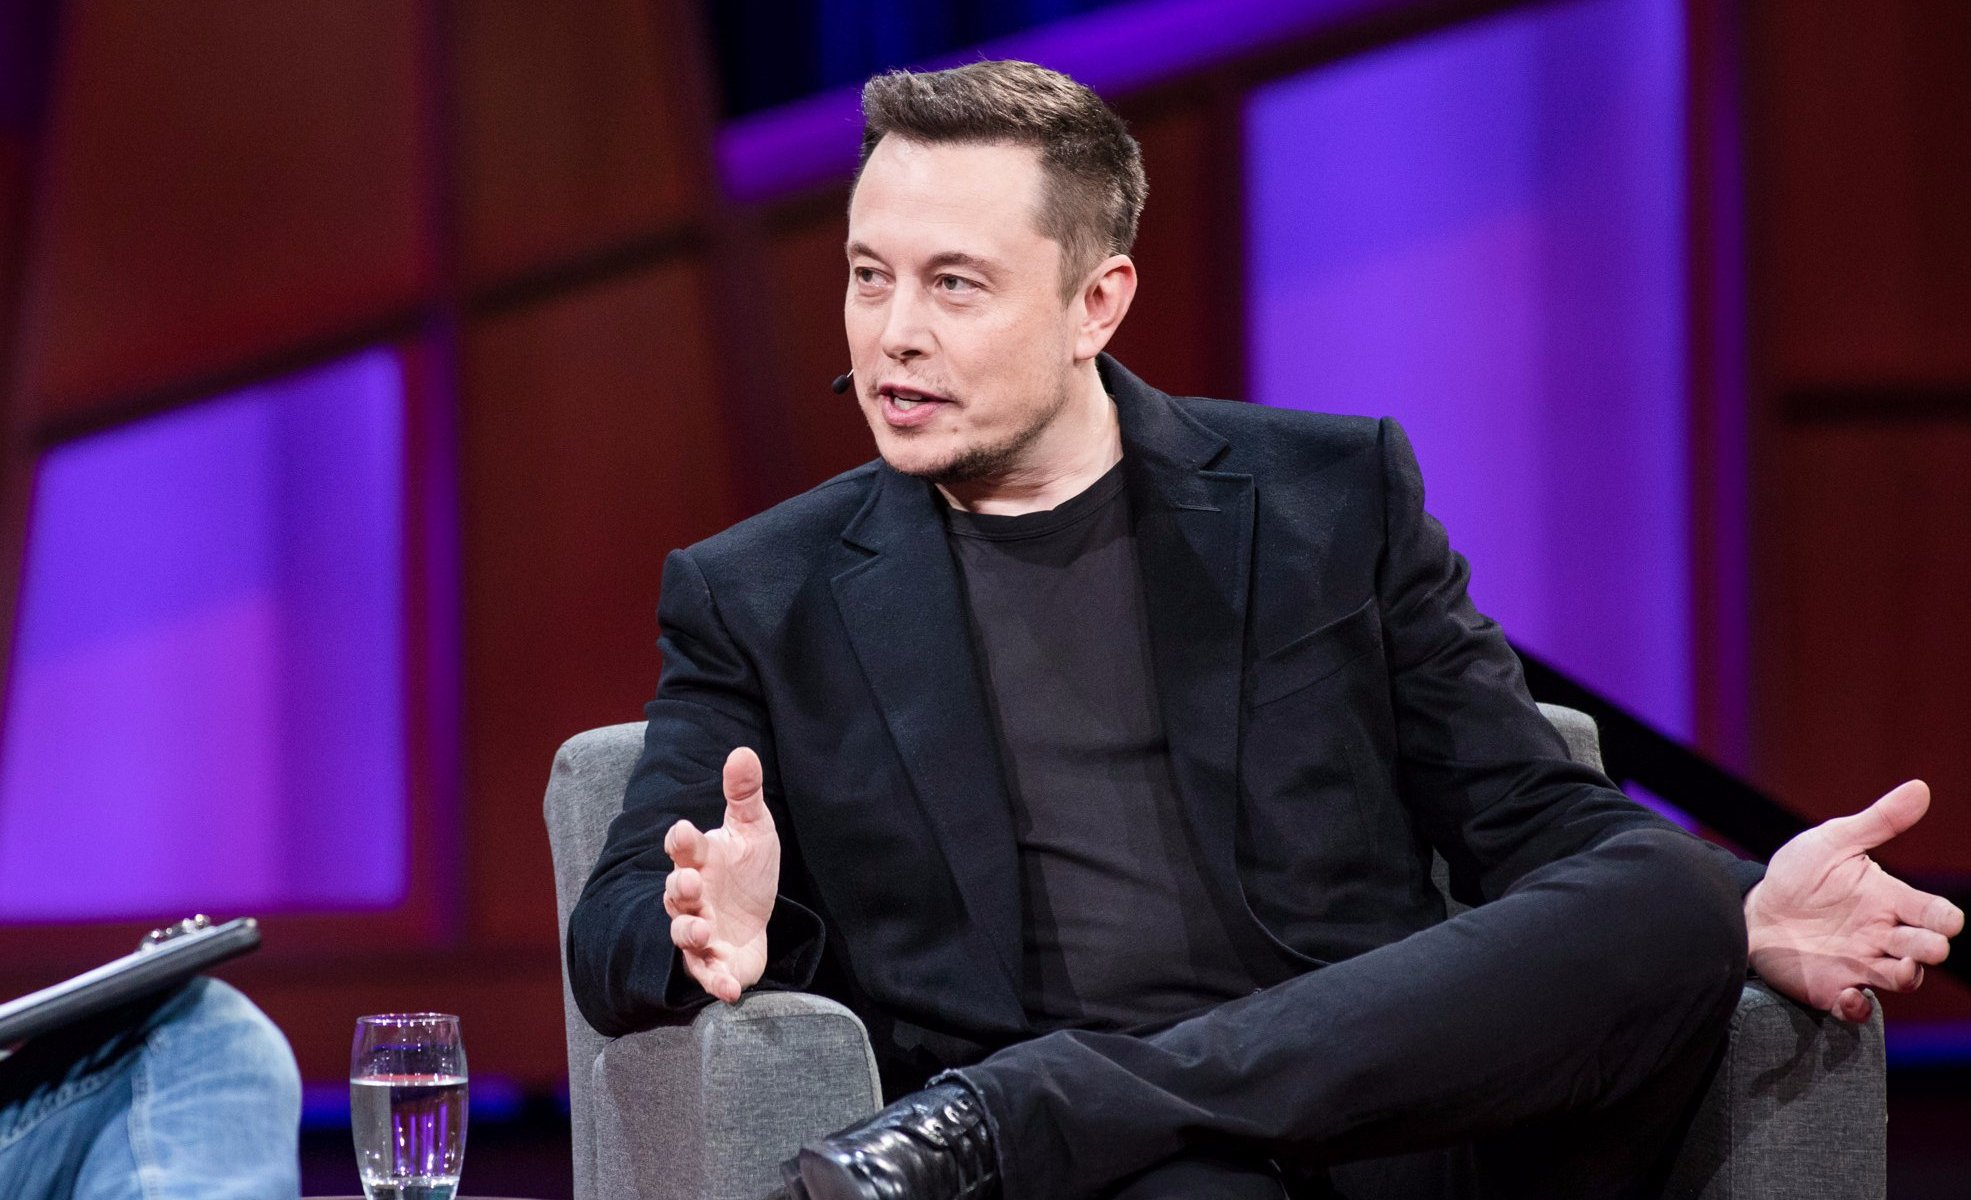 Elon Musk explaining Tesla's previous brush with bankruptcy